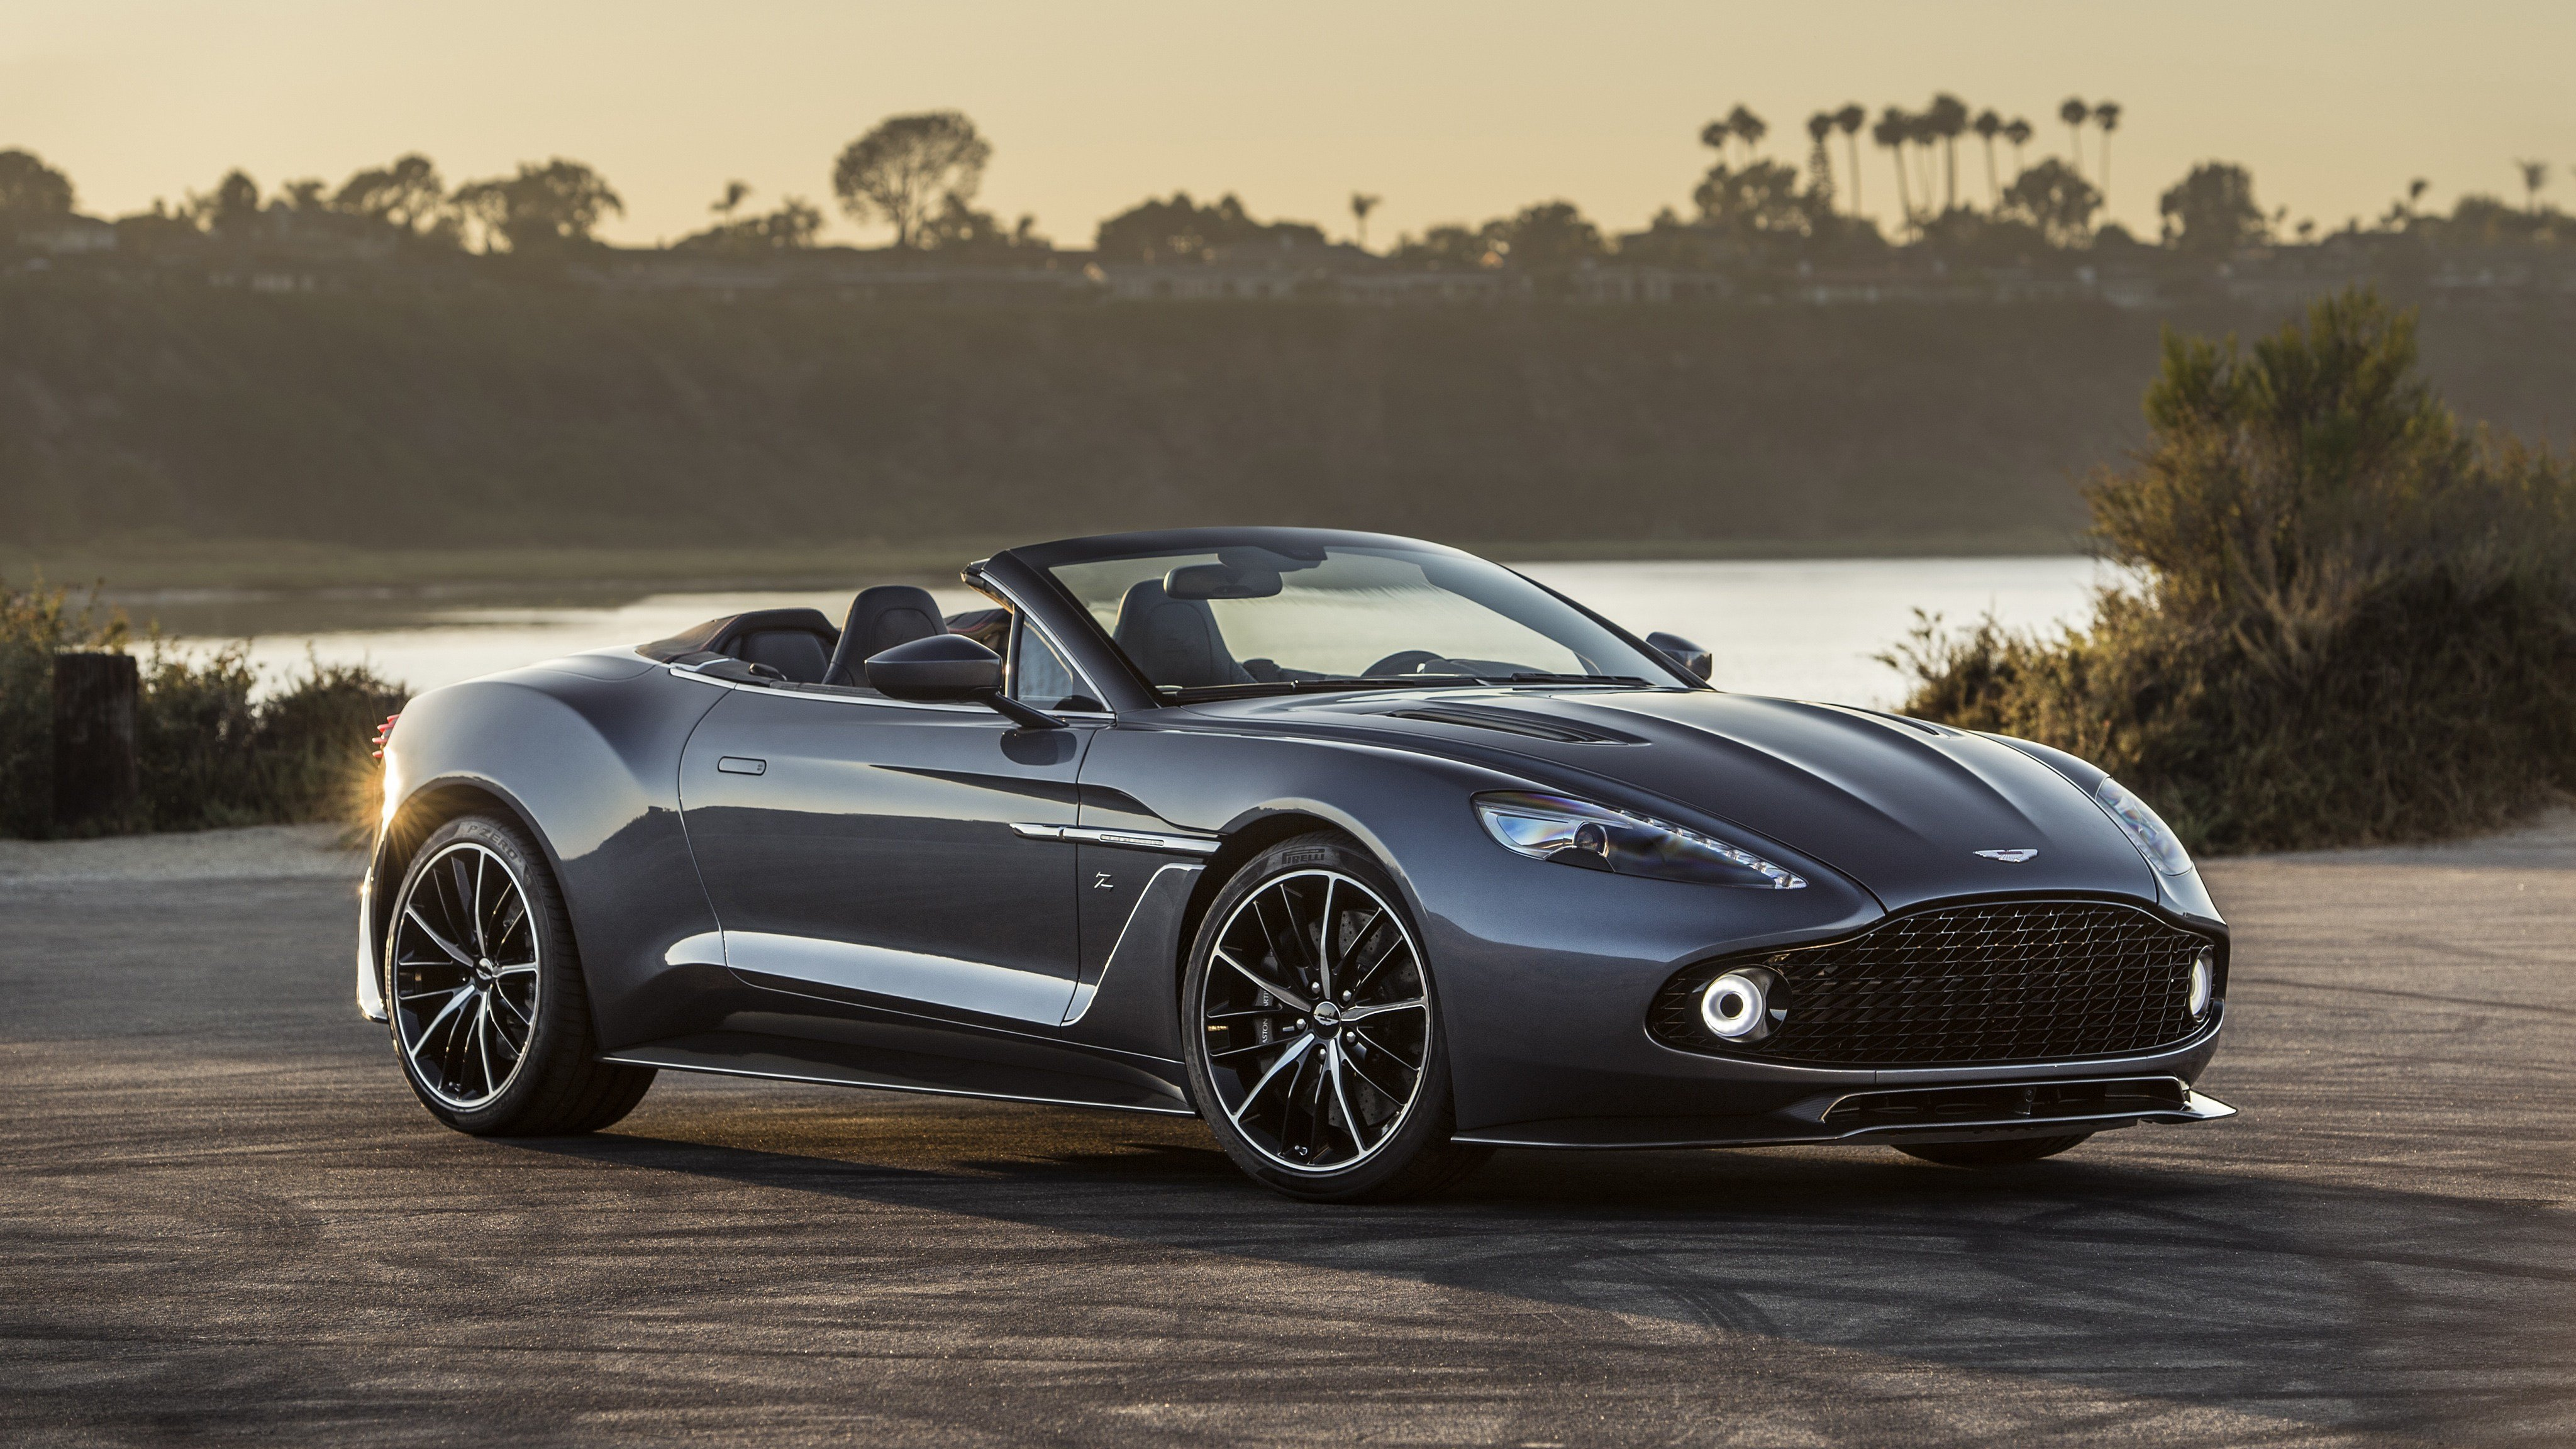 Latest 2017 Aston Martin Vanquish Zagato Volante 4K Wallpaper Free Download